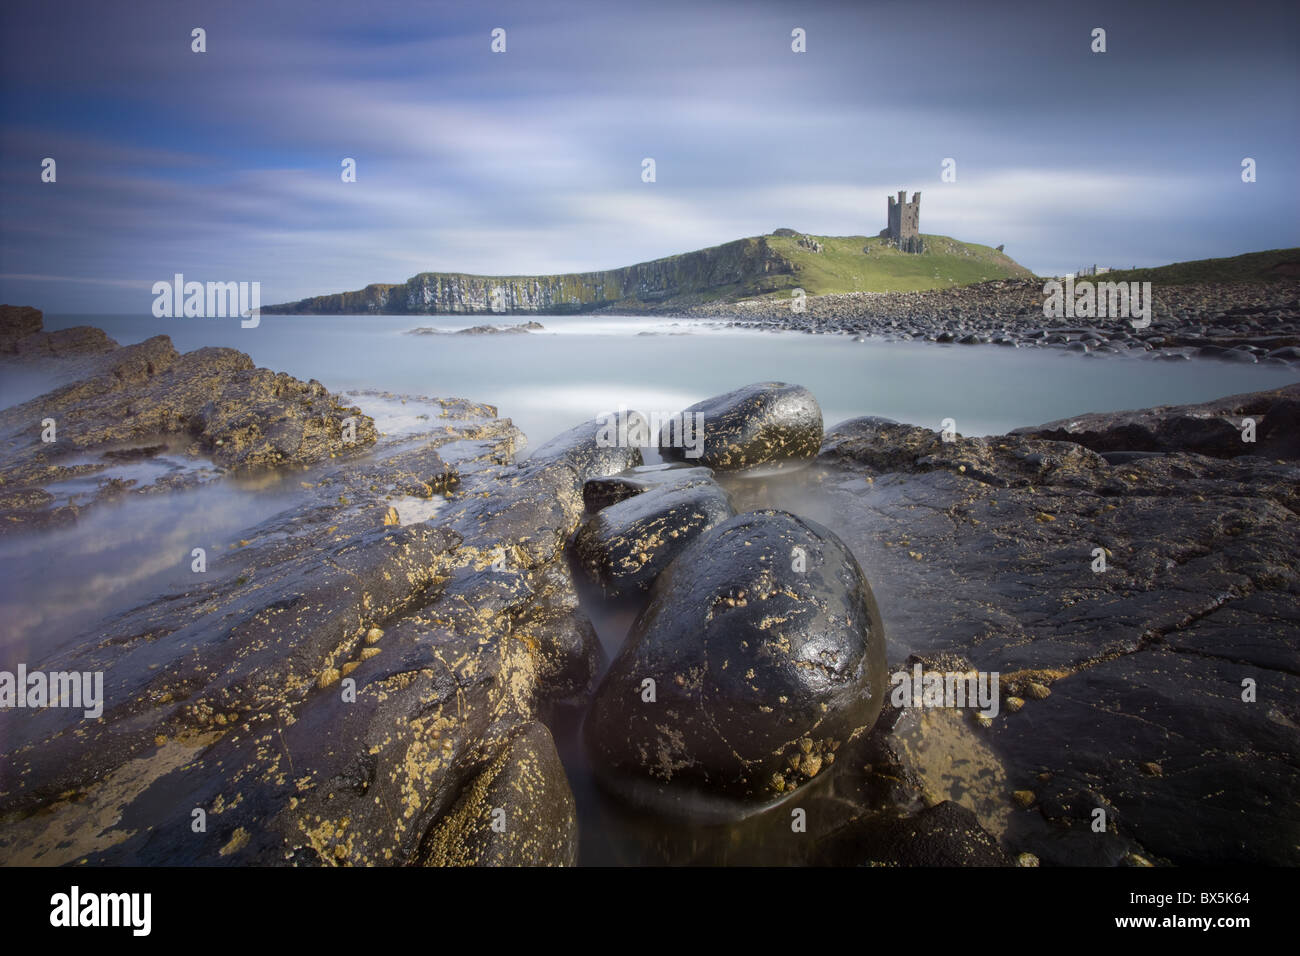 Dunstanburgh Castle bathed in afternoon sunlight with rocky coastline in foreground, Embleton Bay, Northumberland, Stock Photo